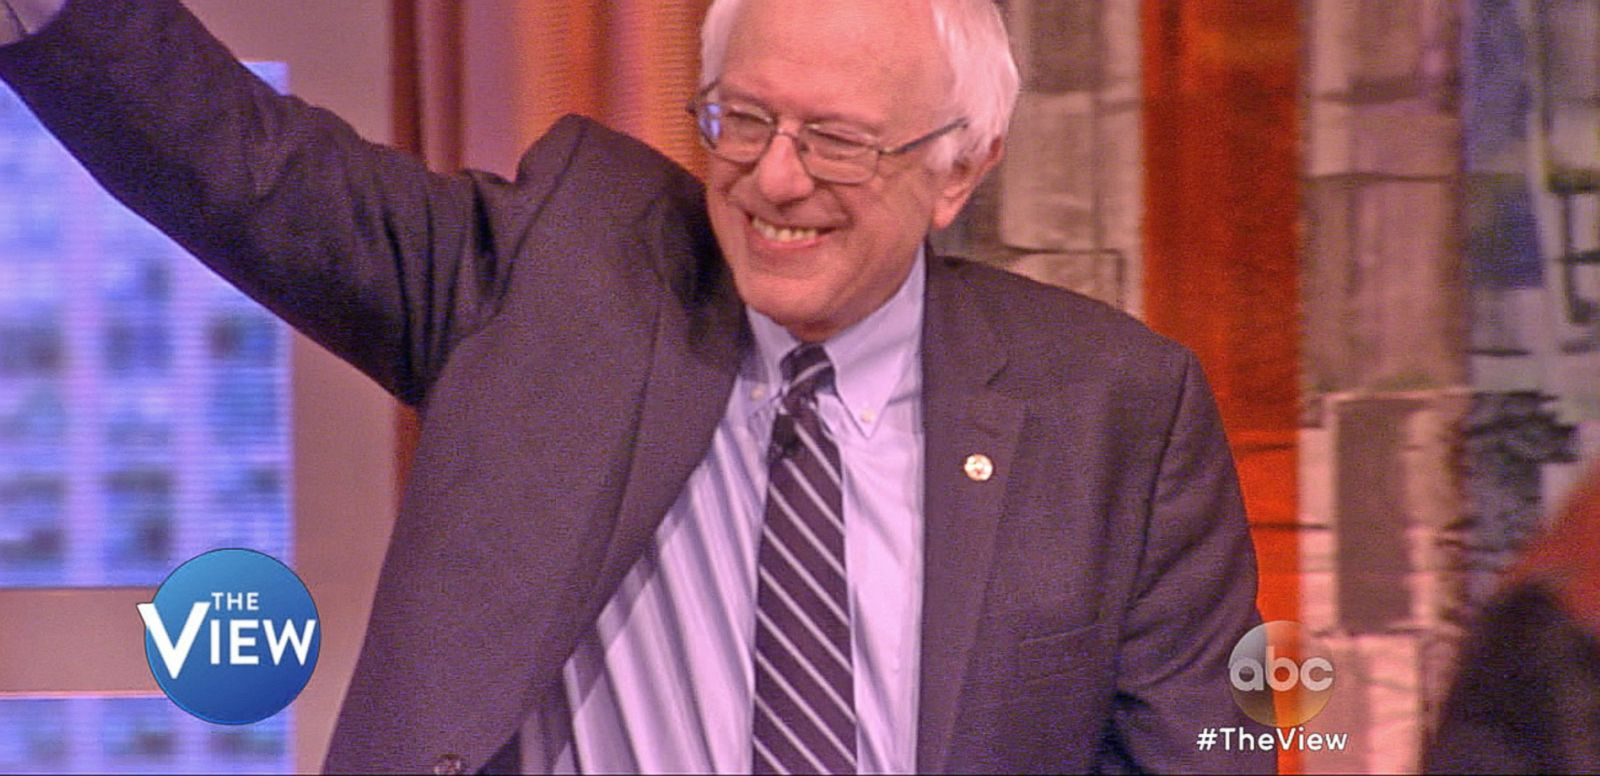 VIDEO: Bernie Sanders Discusses Presidential Politics on 'The View'